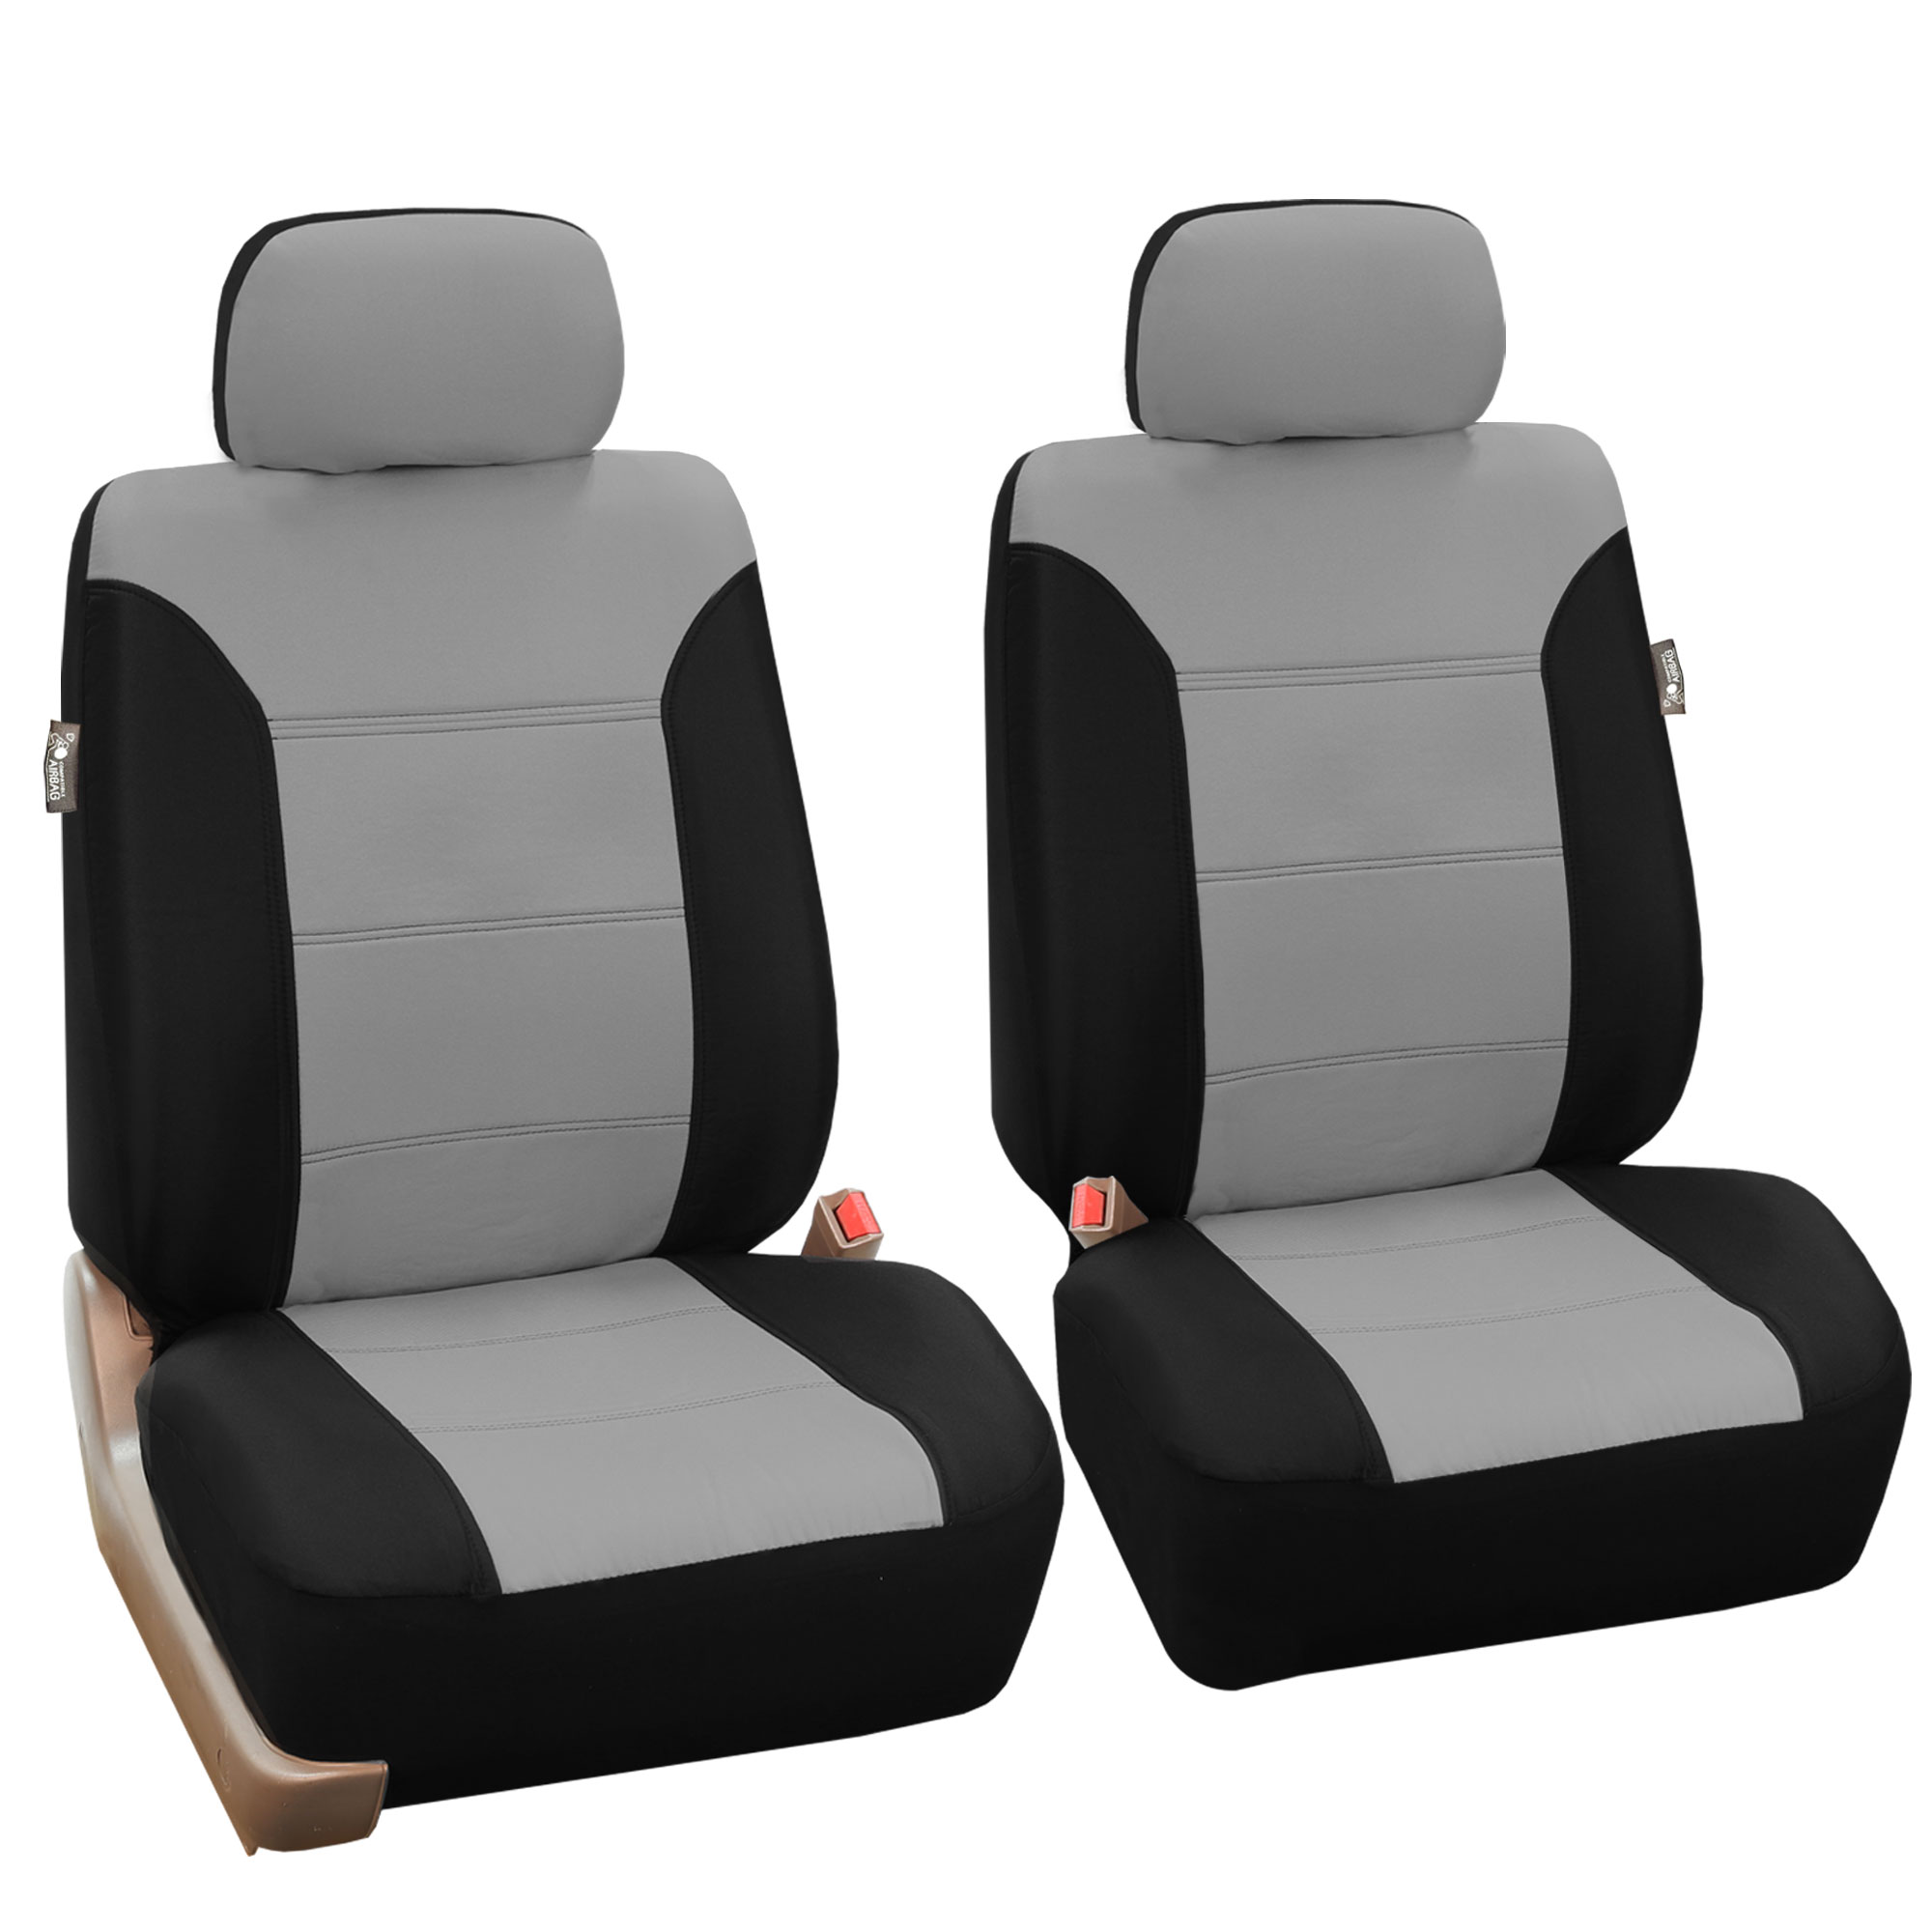 classic khaki bucket car seat covers pair ebay. Black Bedroom Furniture Sets. Home Design Ideas